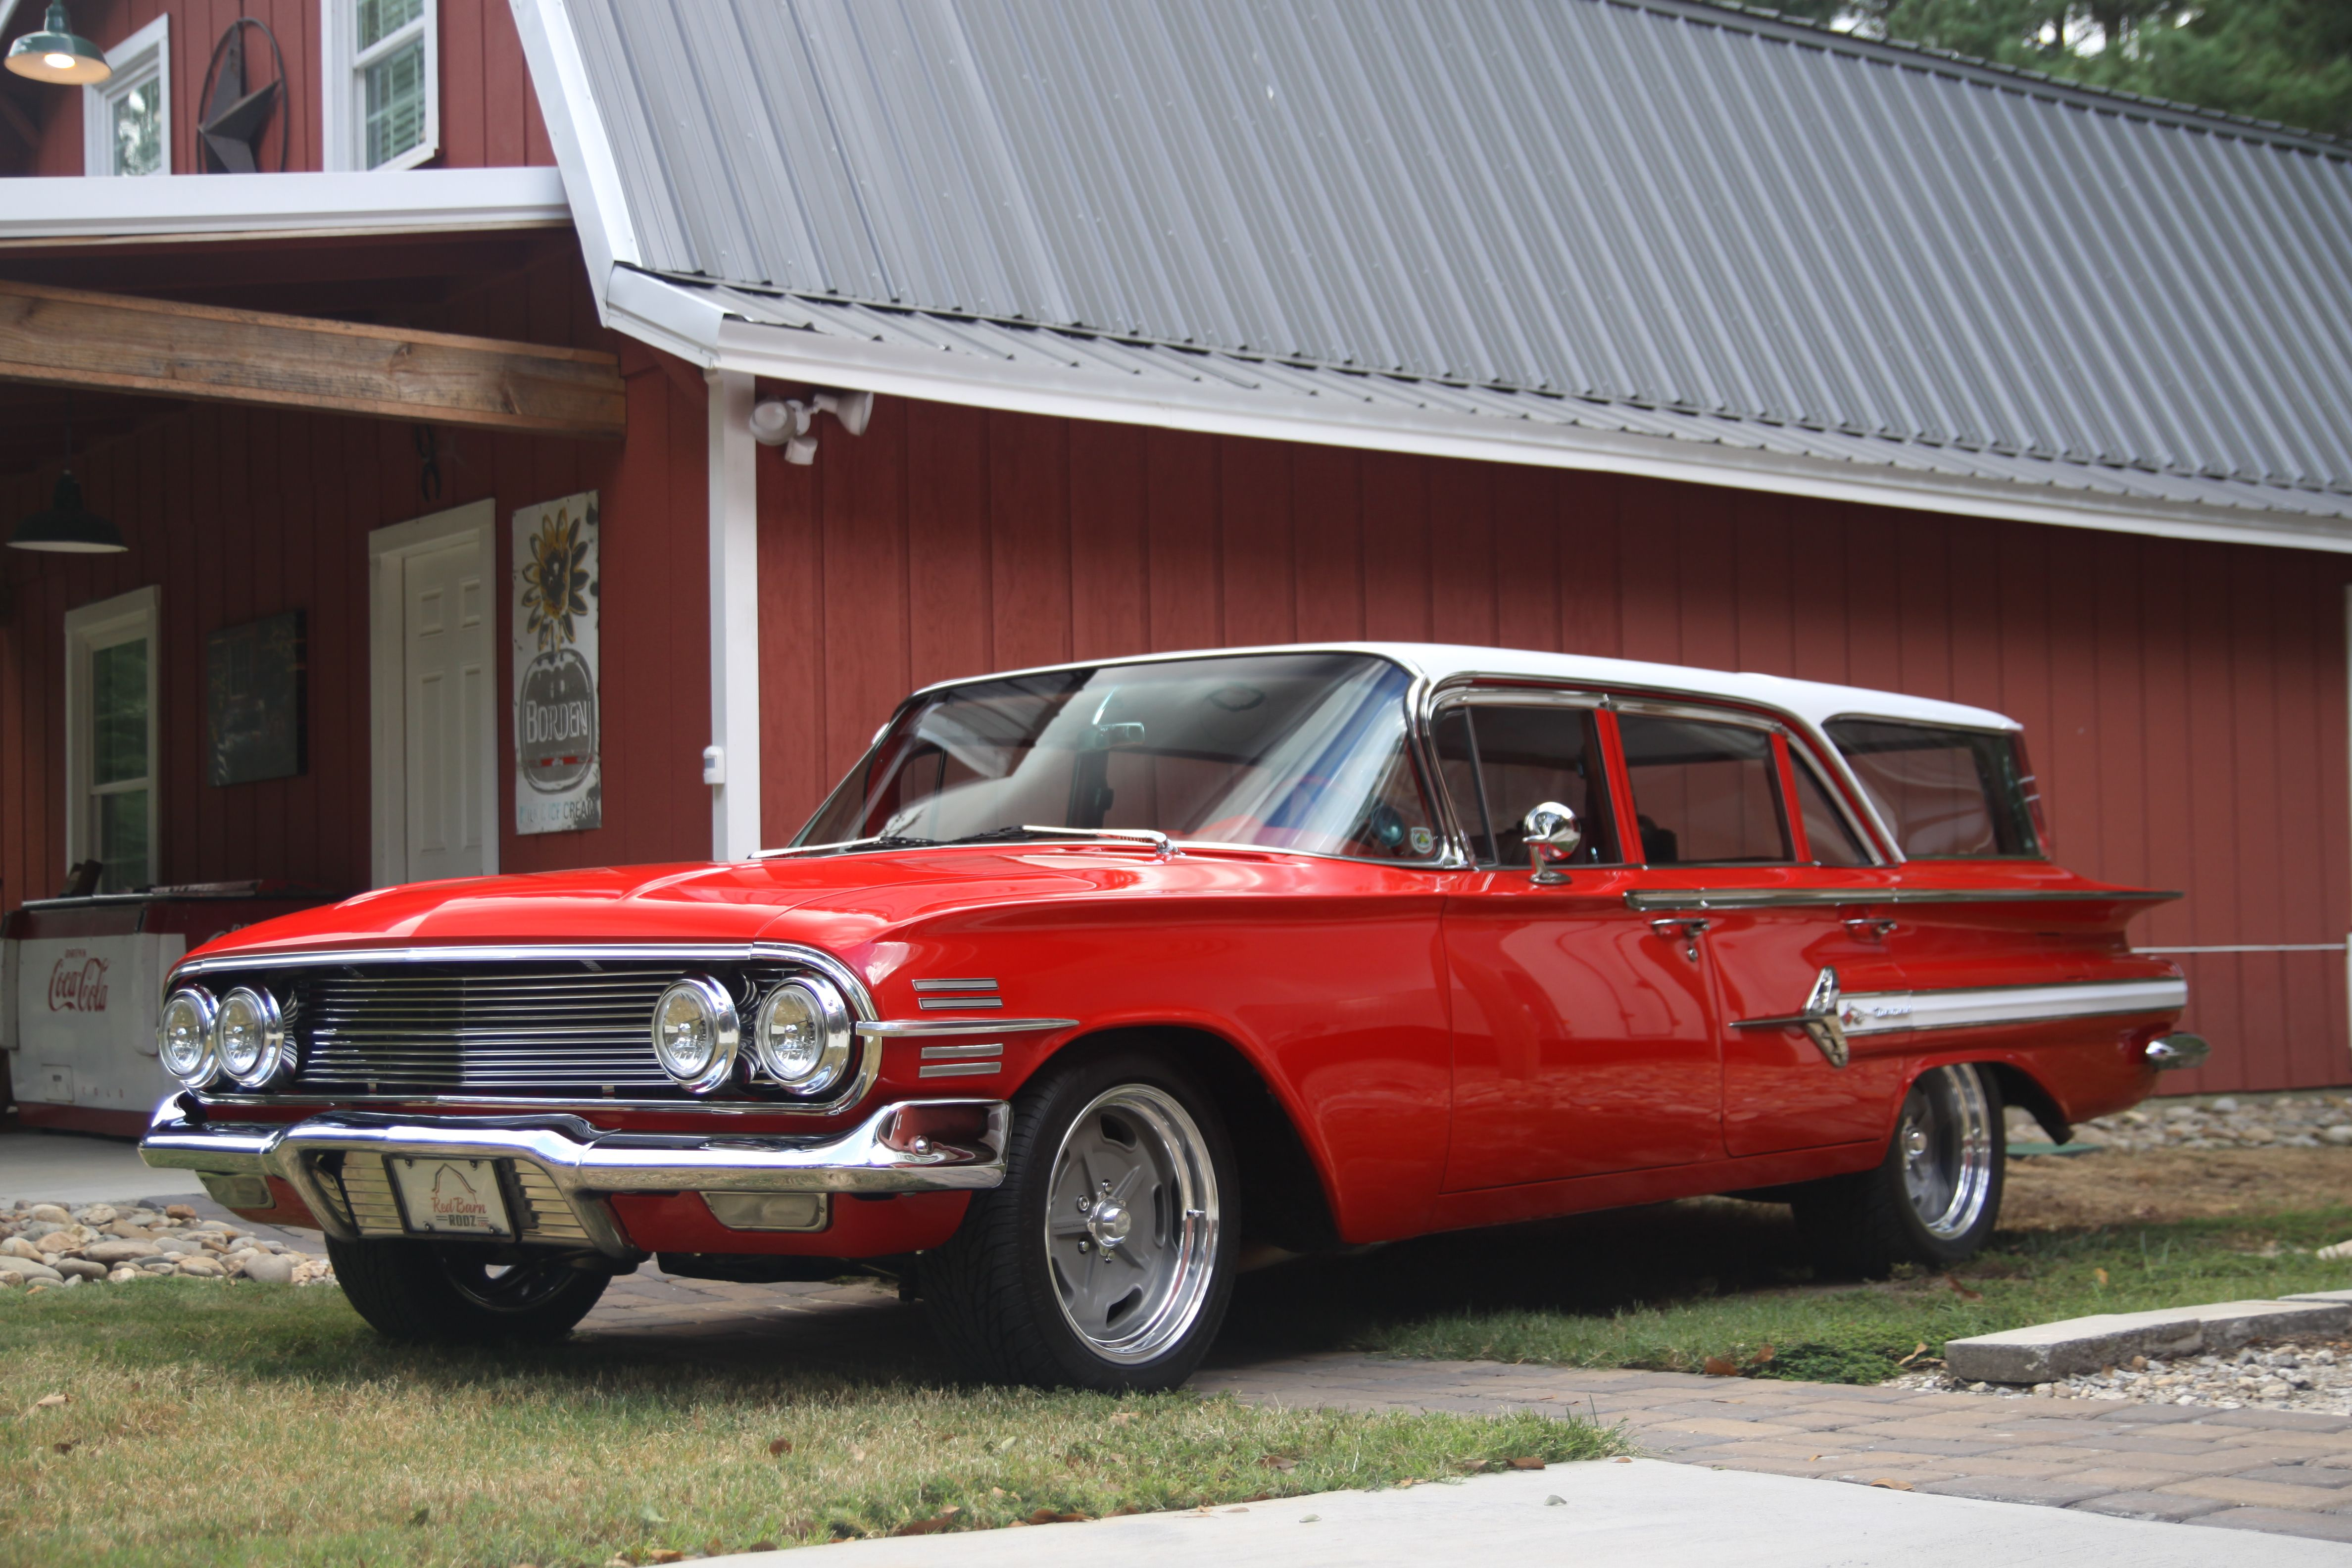 1960 Chevy Nomad Station Wagon With New Grill After New Paint Job